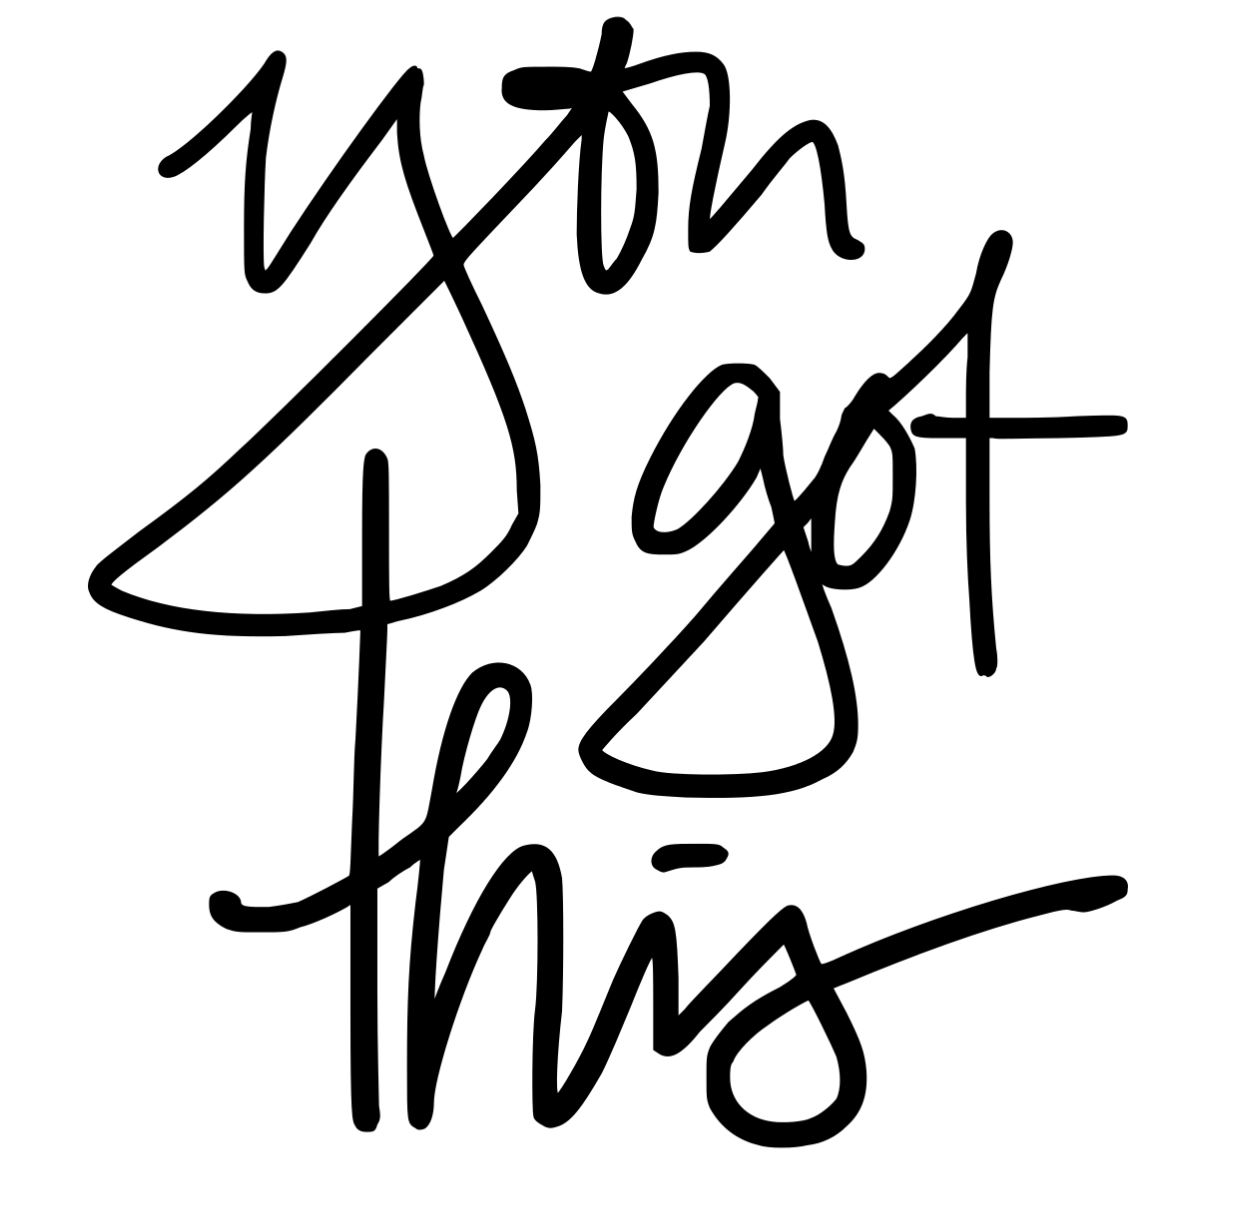 You got this - Copy